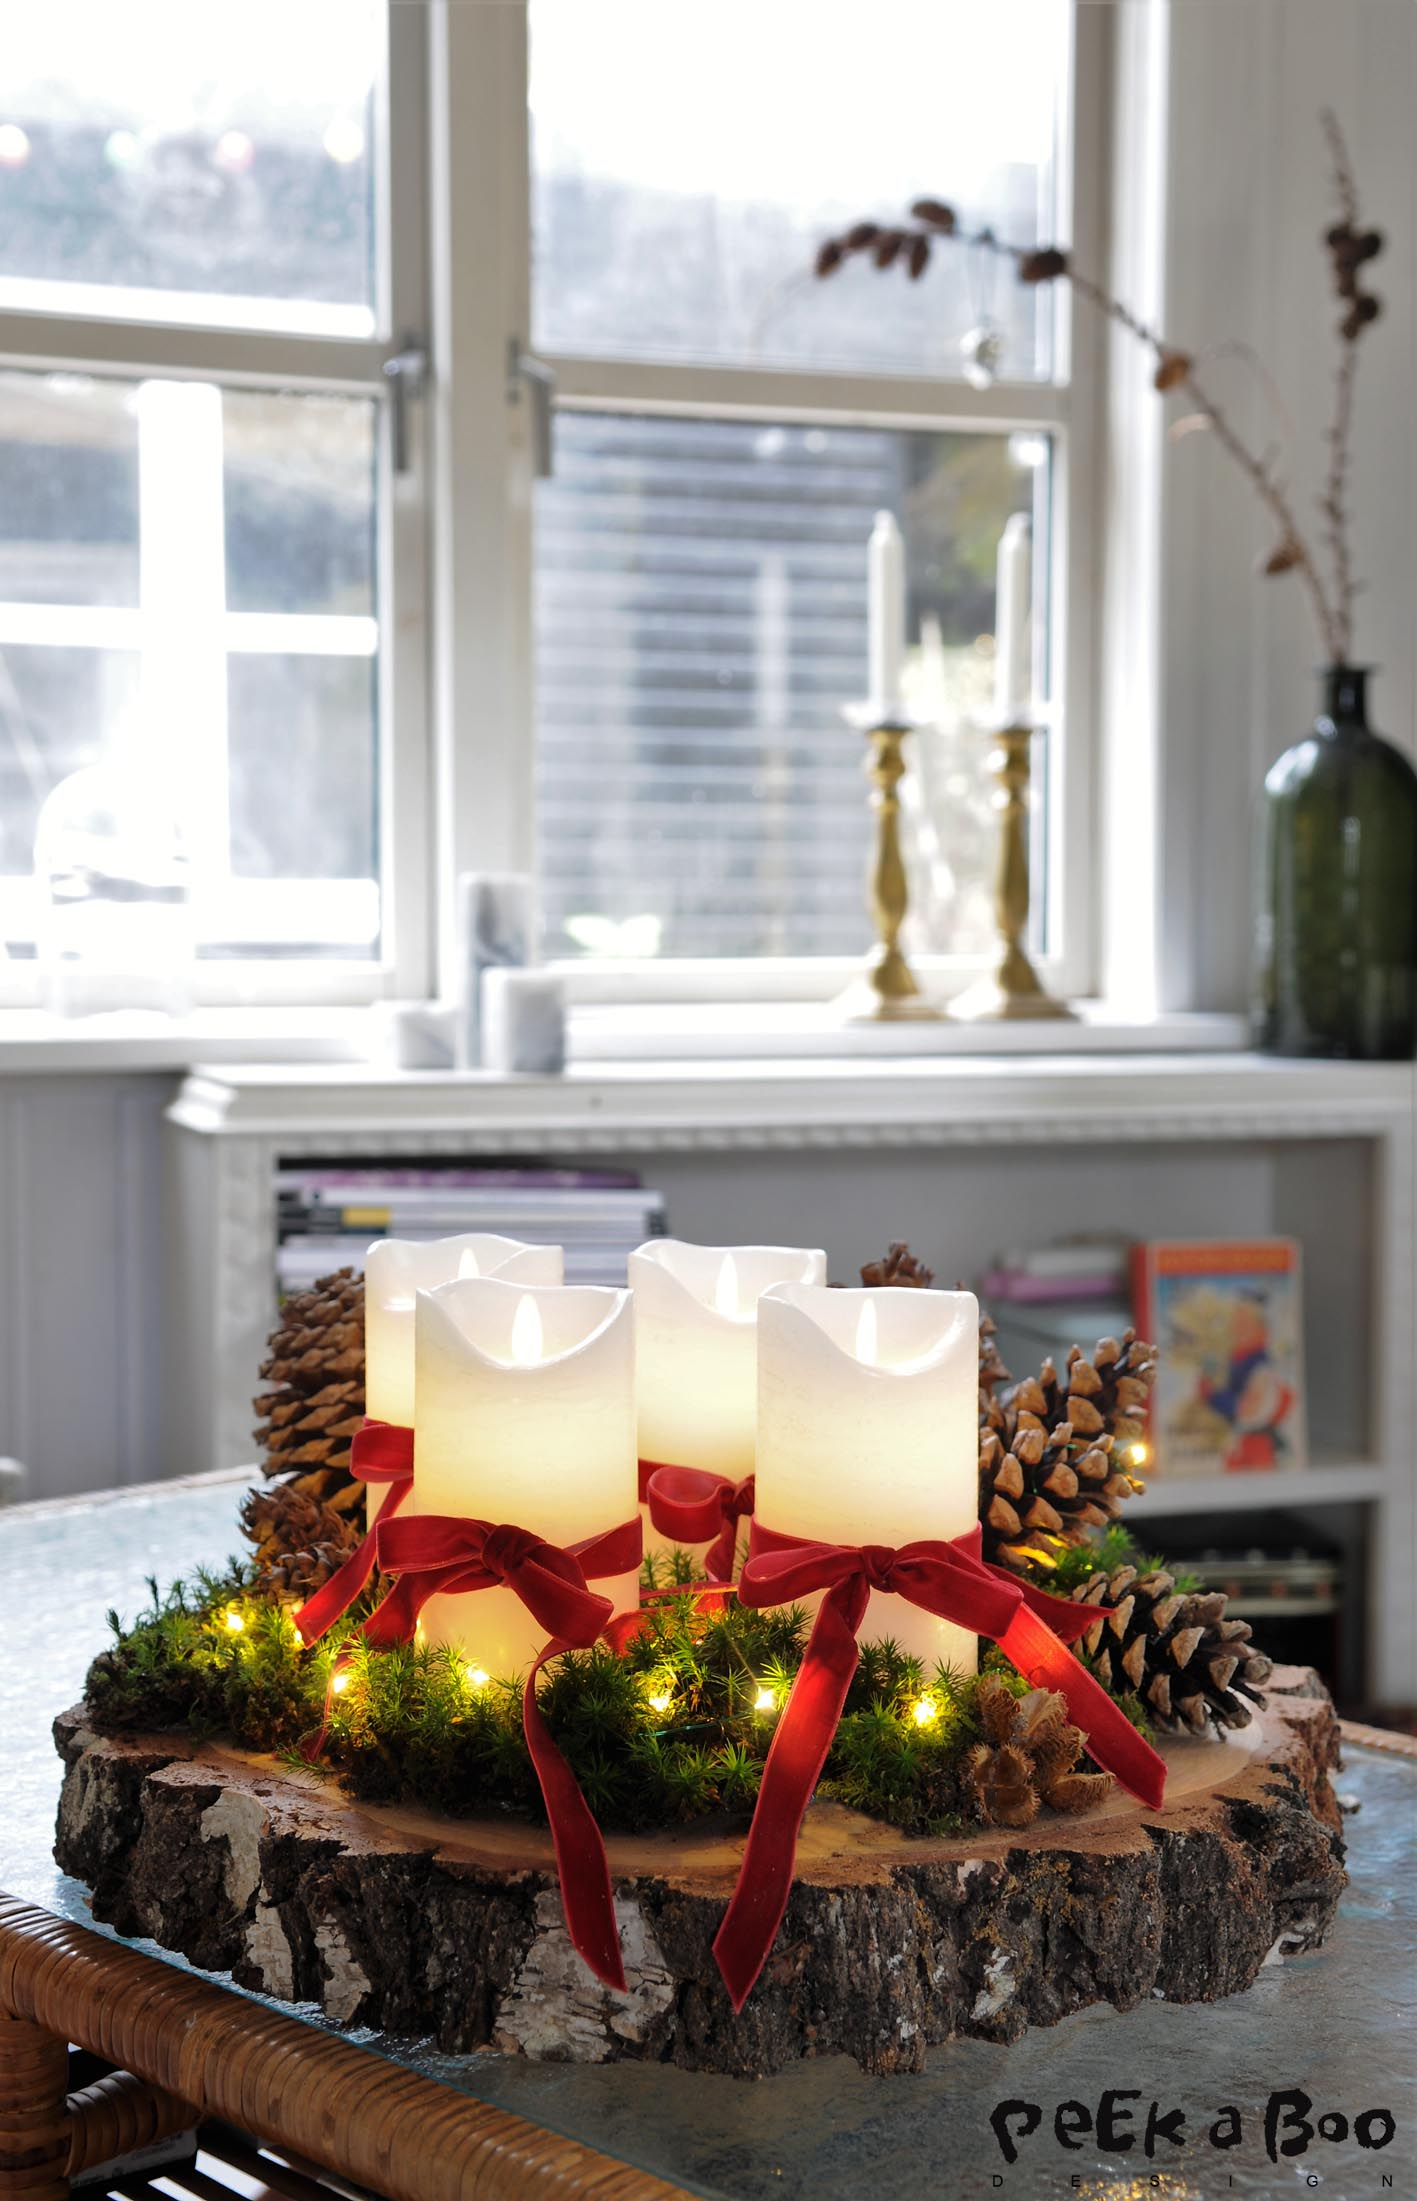 The forest inspired advents decoration that is only made with artificial candlelights, so you o not need to worry about the danger for a fire.